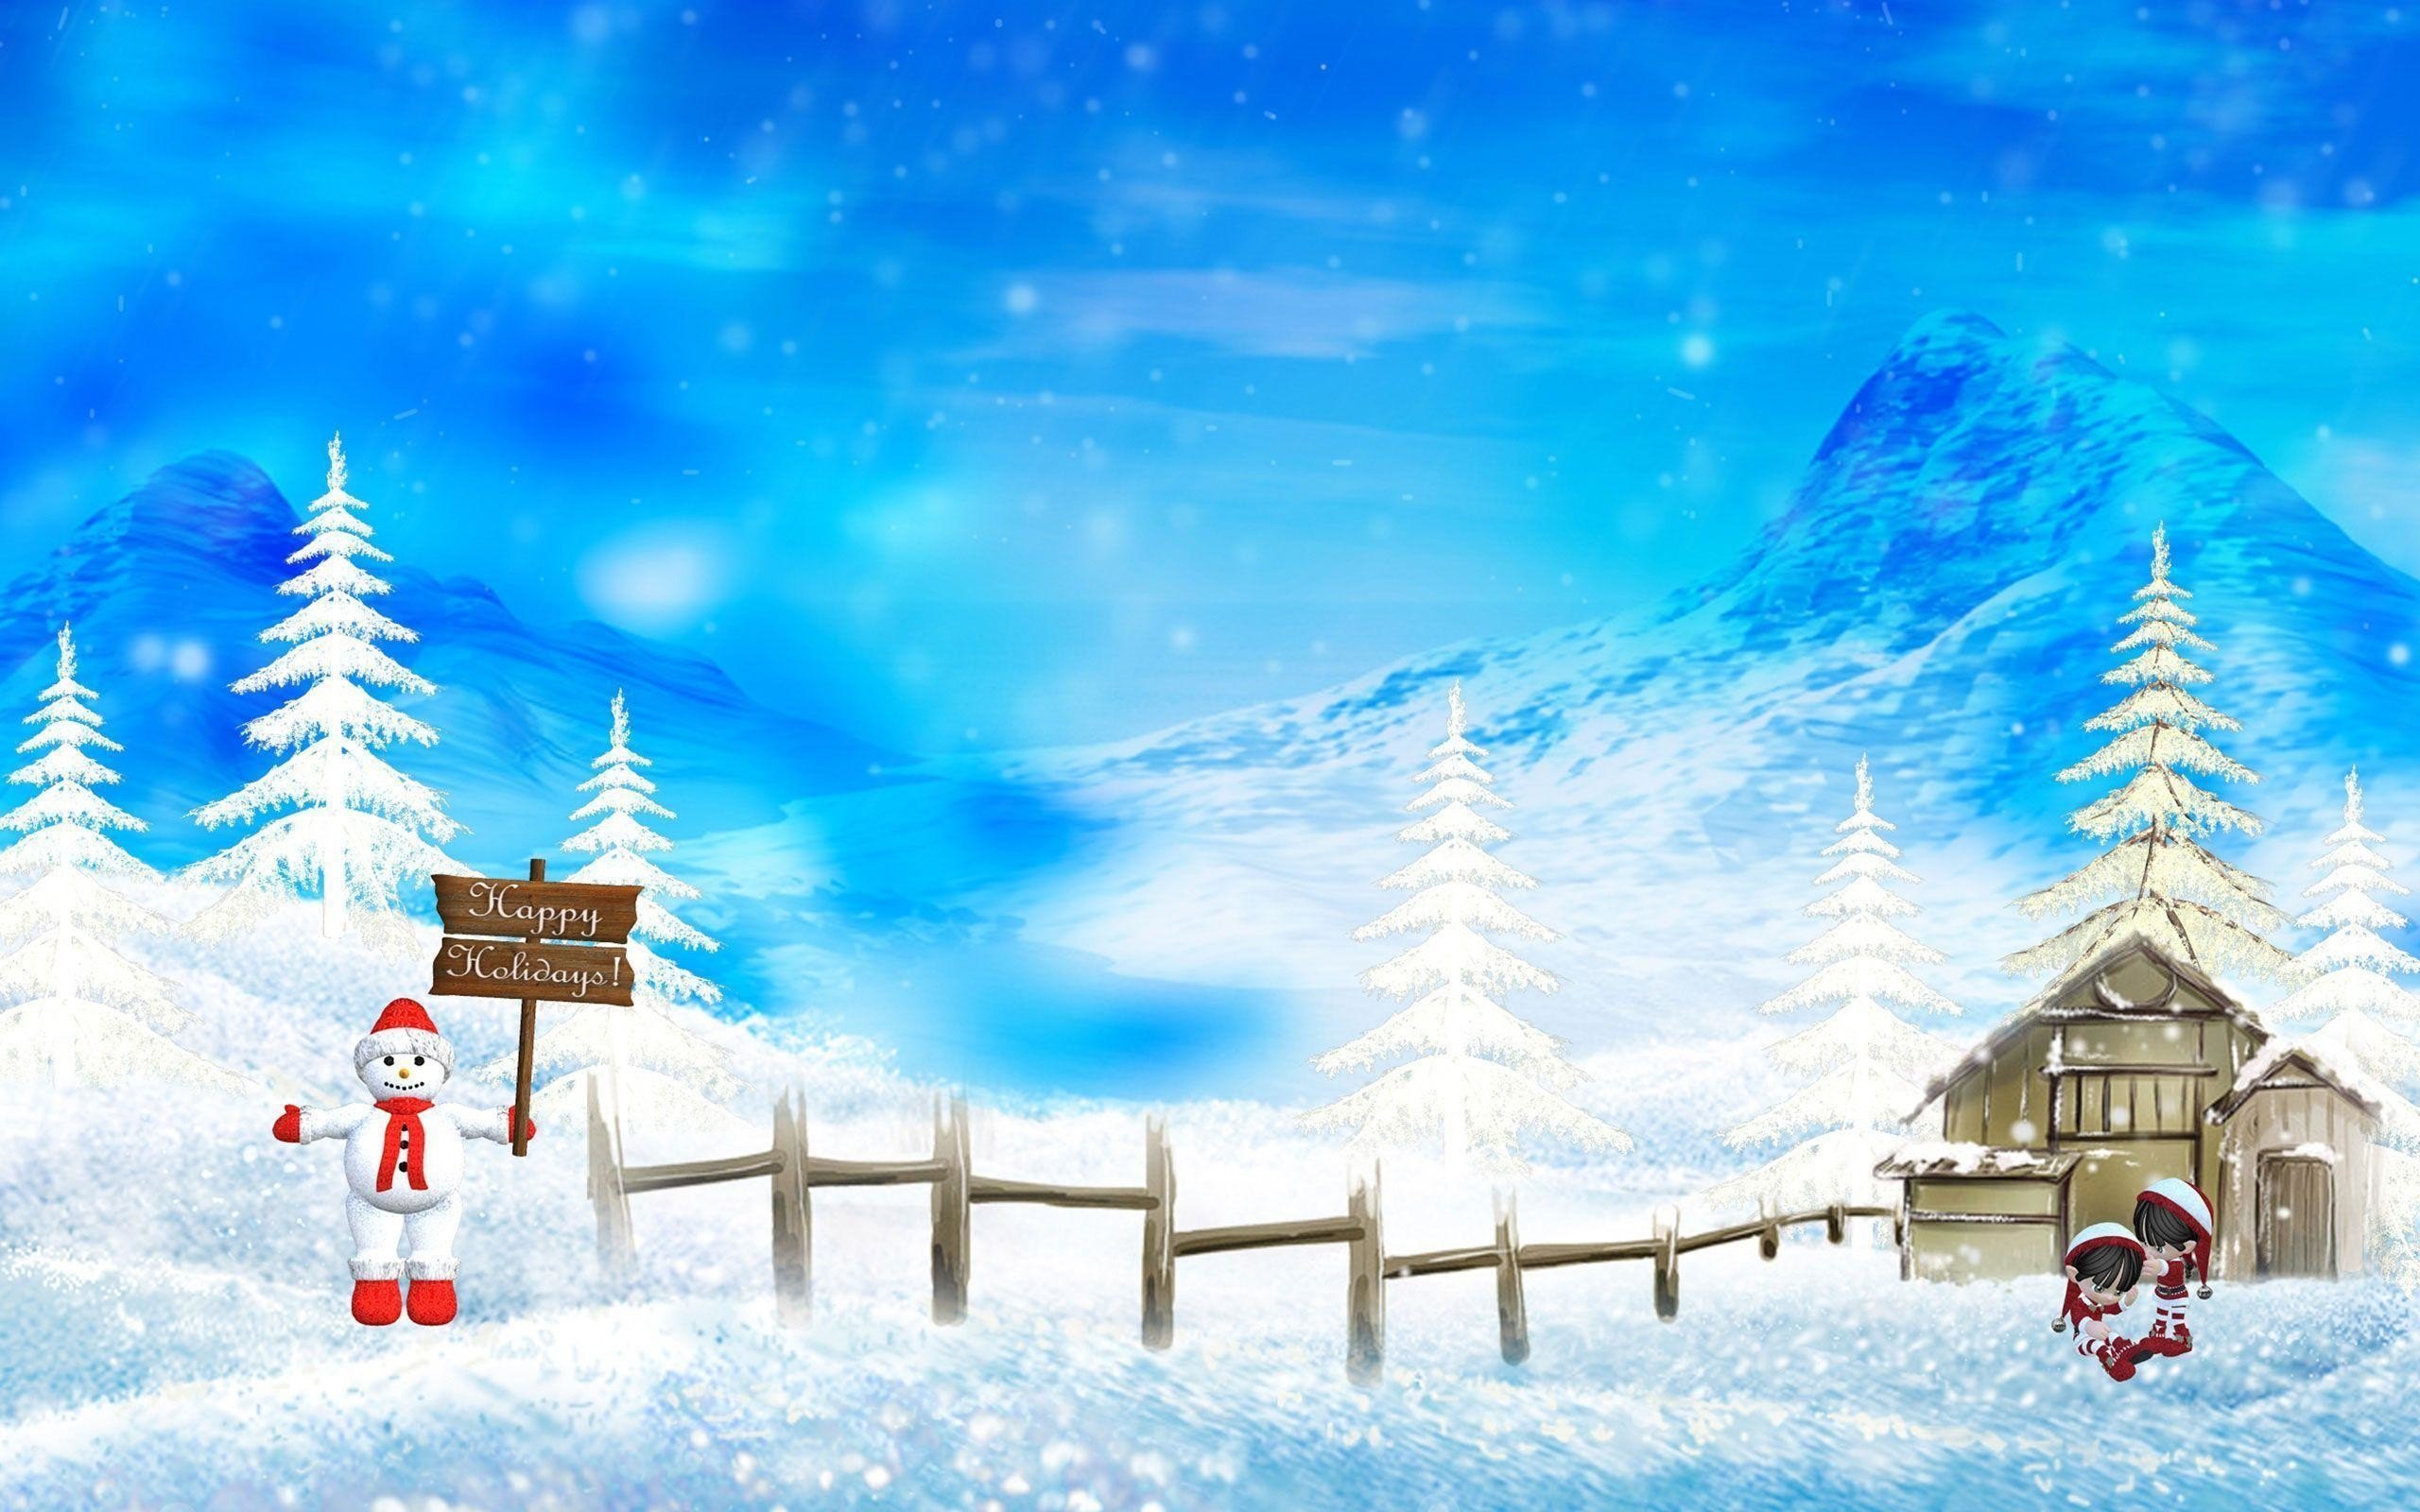 Wallpapers For > Christmas Winter Wallpaper Backgrounds